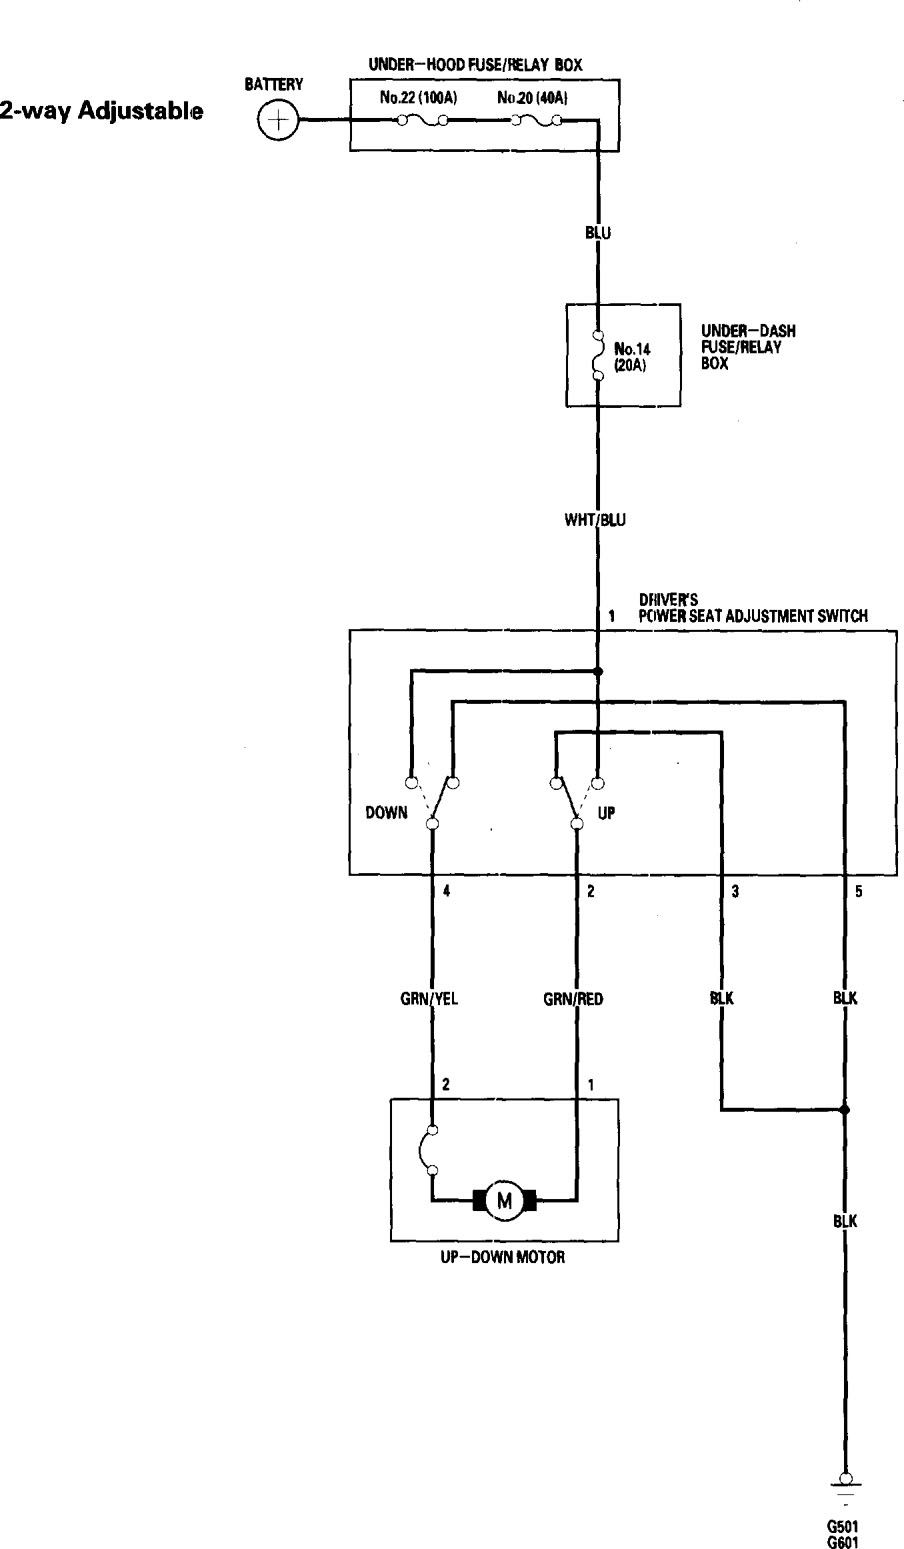 honda accord (2006) - wiring diagrams - power seat - carknowledge.info  carknowledge.info